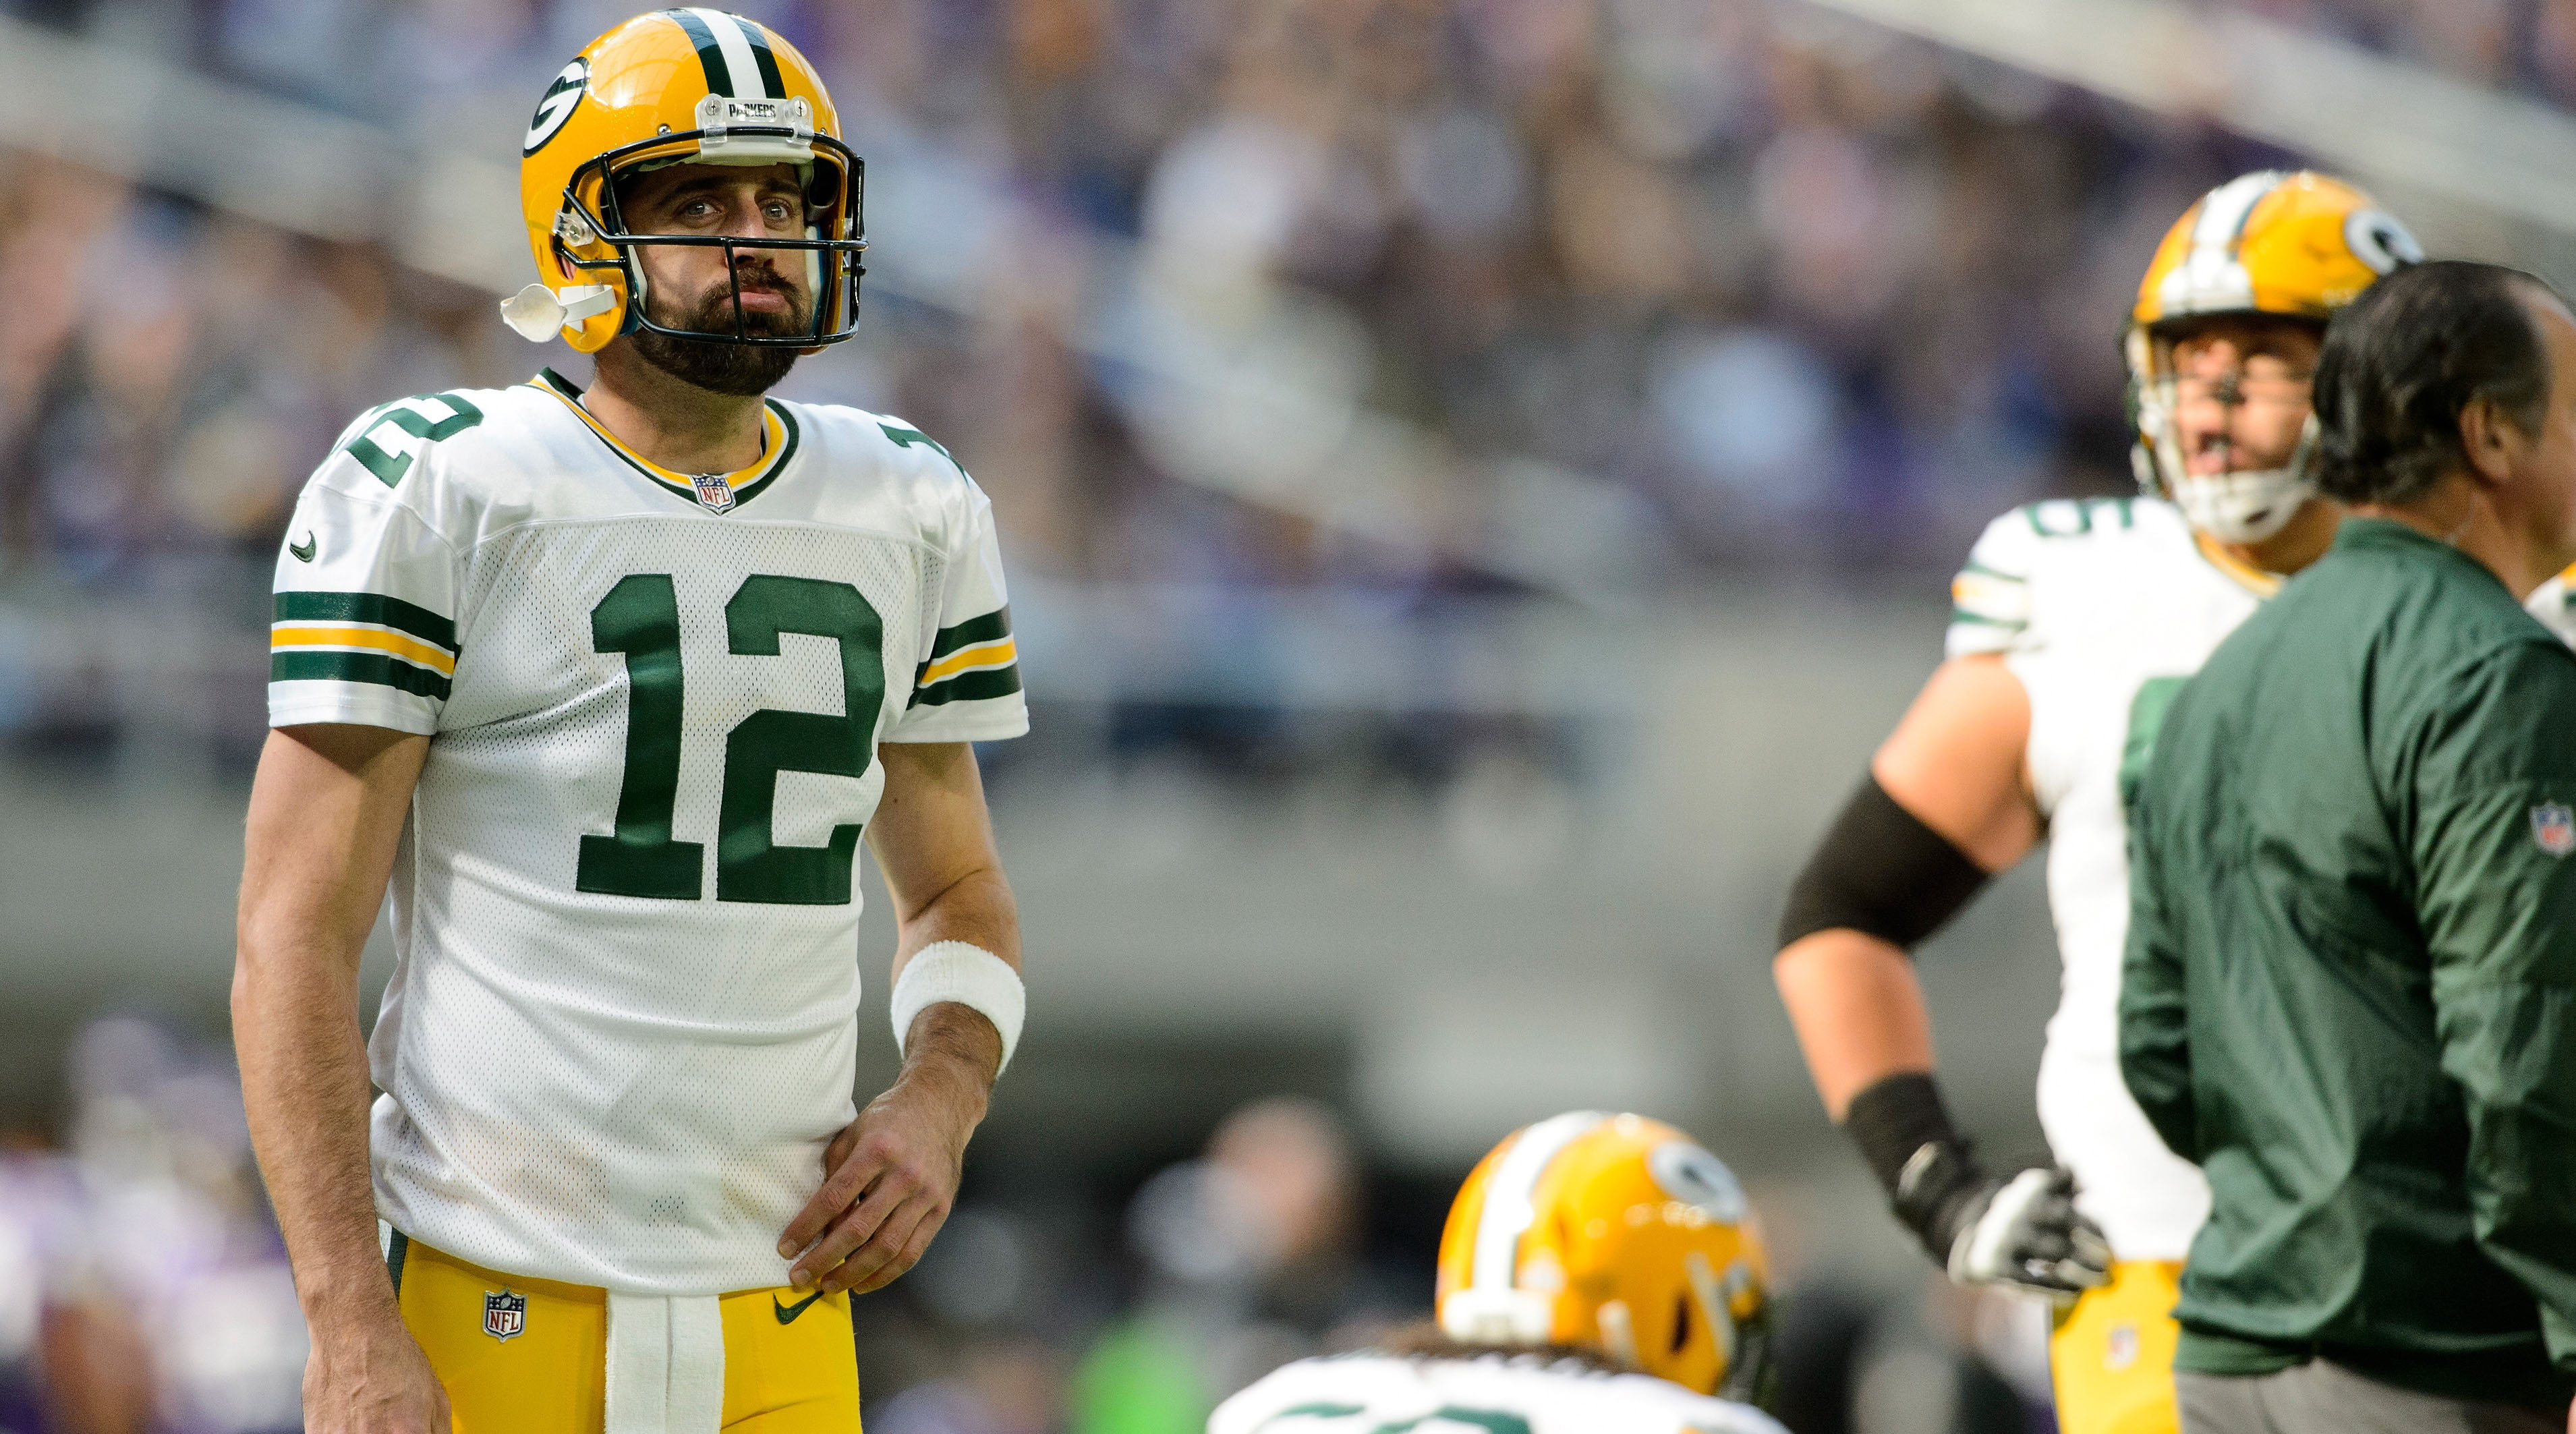 Aaron-rodgers-injury-updates